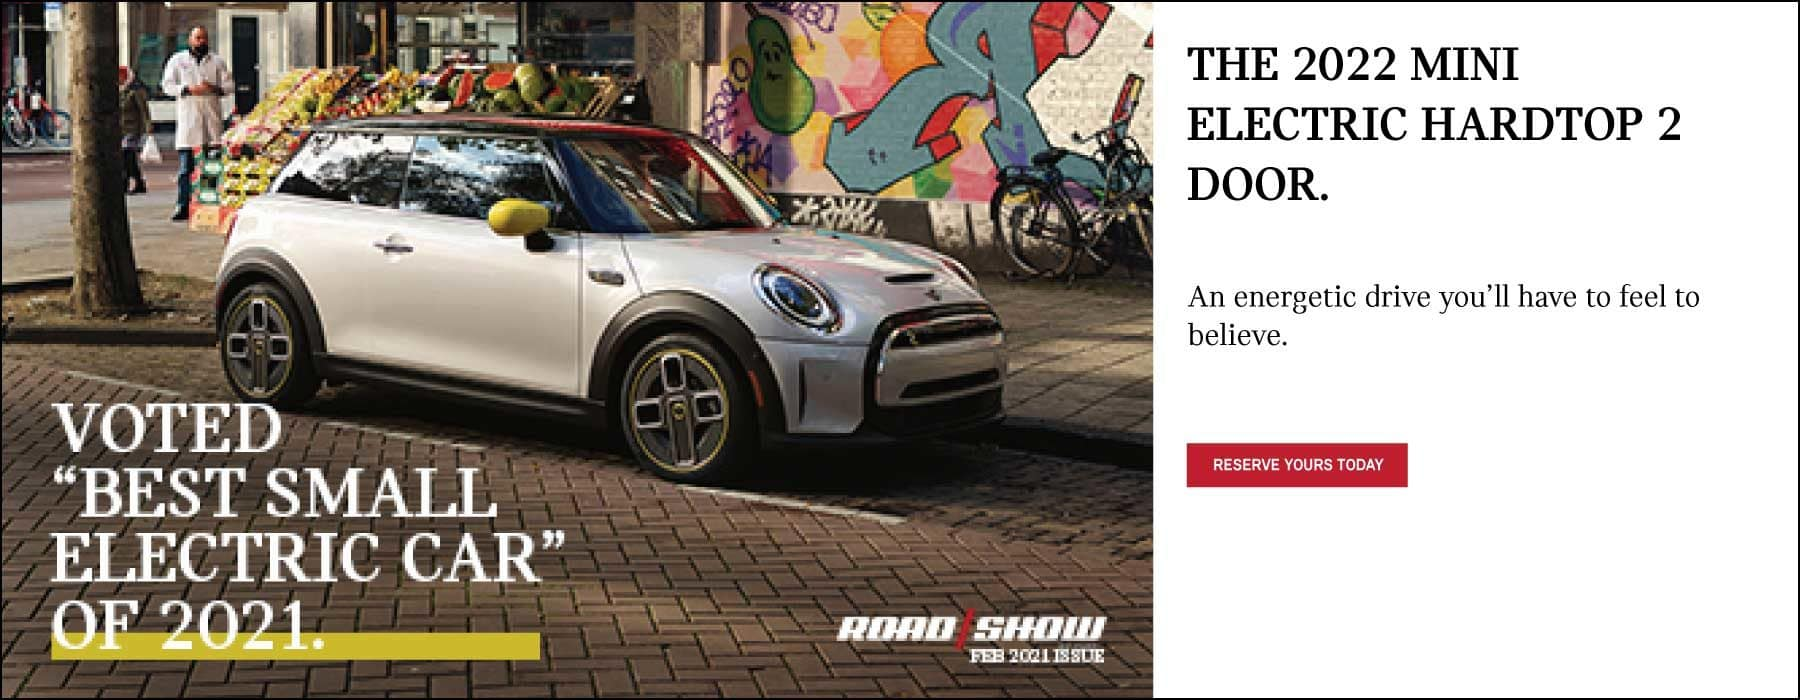 THE 2022 MINI ELECTRIC HARDTOP 2 DOOR. CLICK TO RESERVE YOURS TODAY.